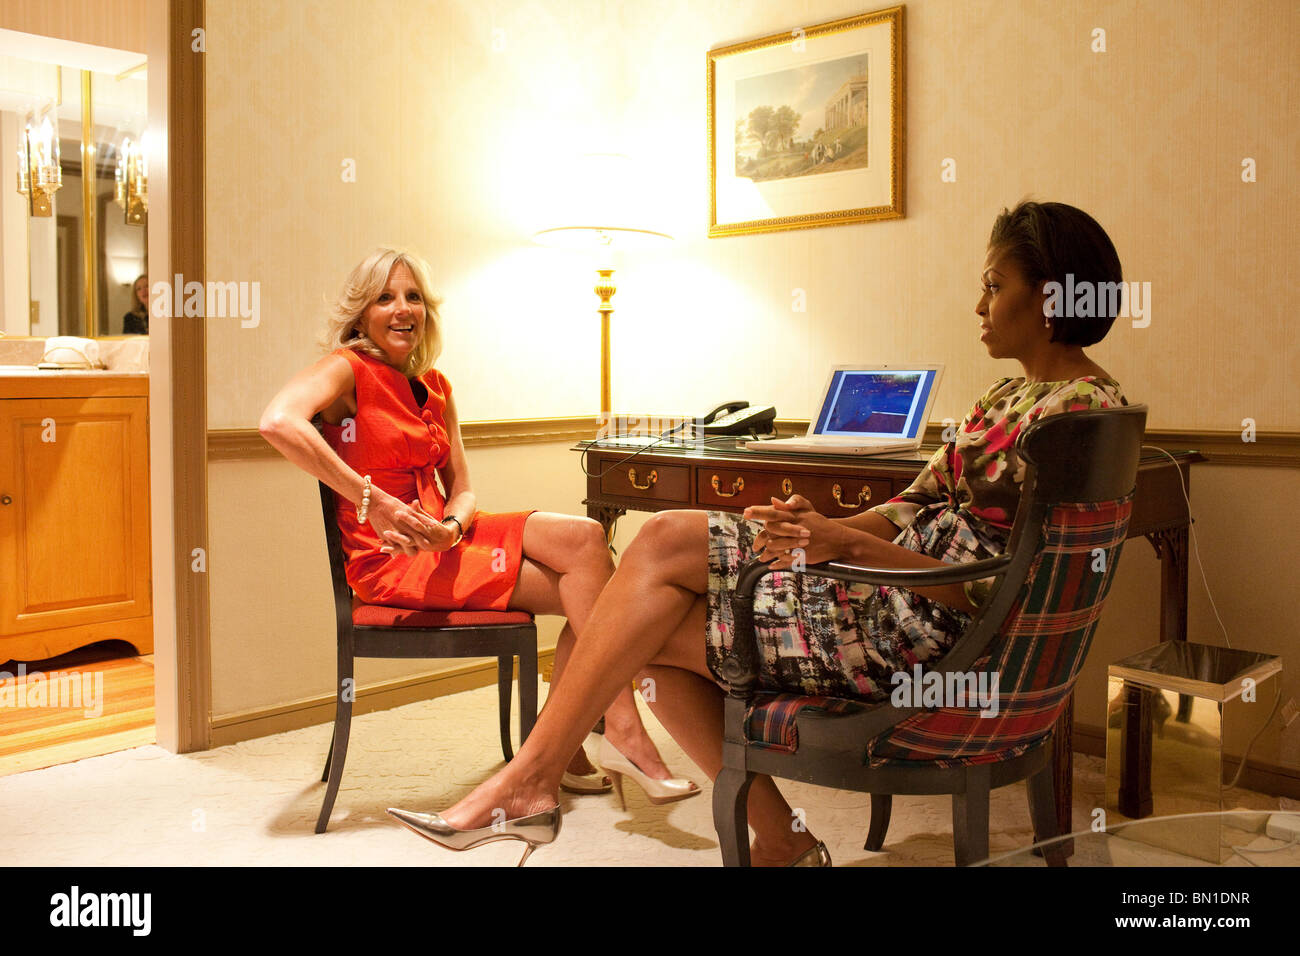 First Lady Michelle Obama and Dr. Jill Biden wait for the start of the Women's Leadership Forum Issues Conference. - Stock Image